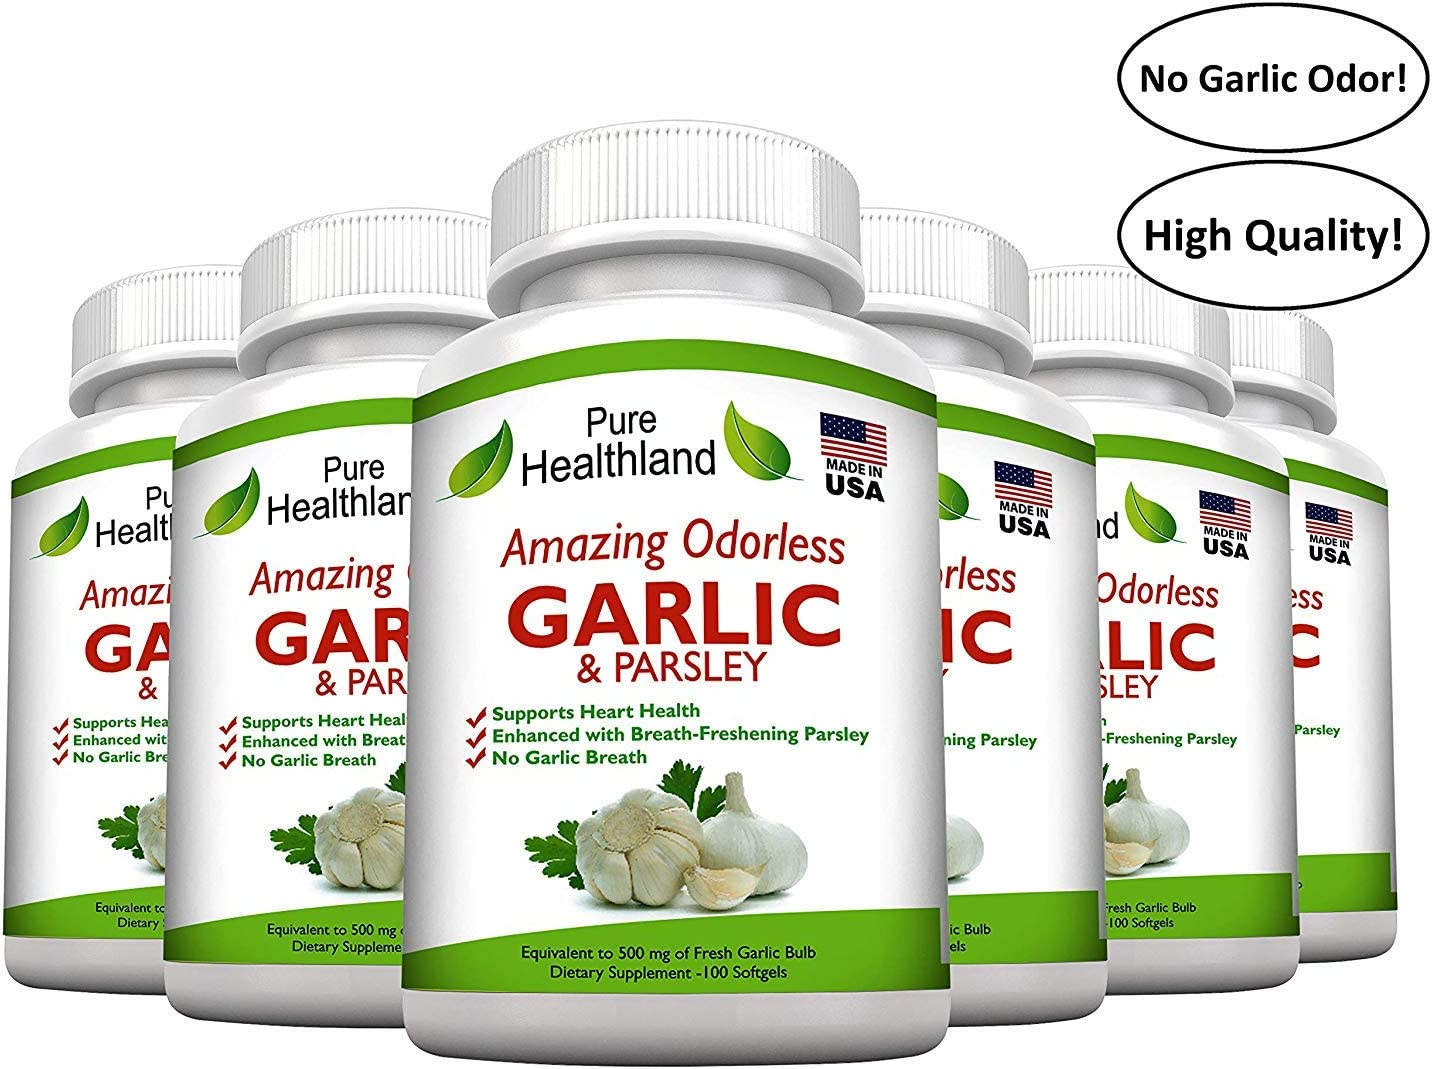 Amazing ODORLESS Garlic and Parsley Supplement Softgels for Men and Women. Equal to 500mg Fresh Garlic Bulbs. Best Garlic Pills. Allium Sativum. Made in USA